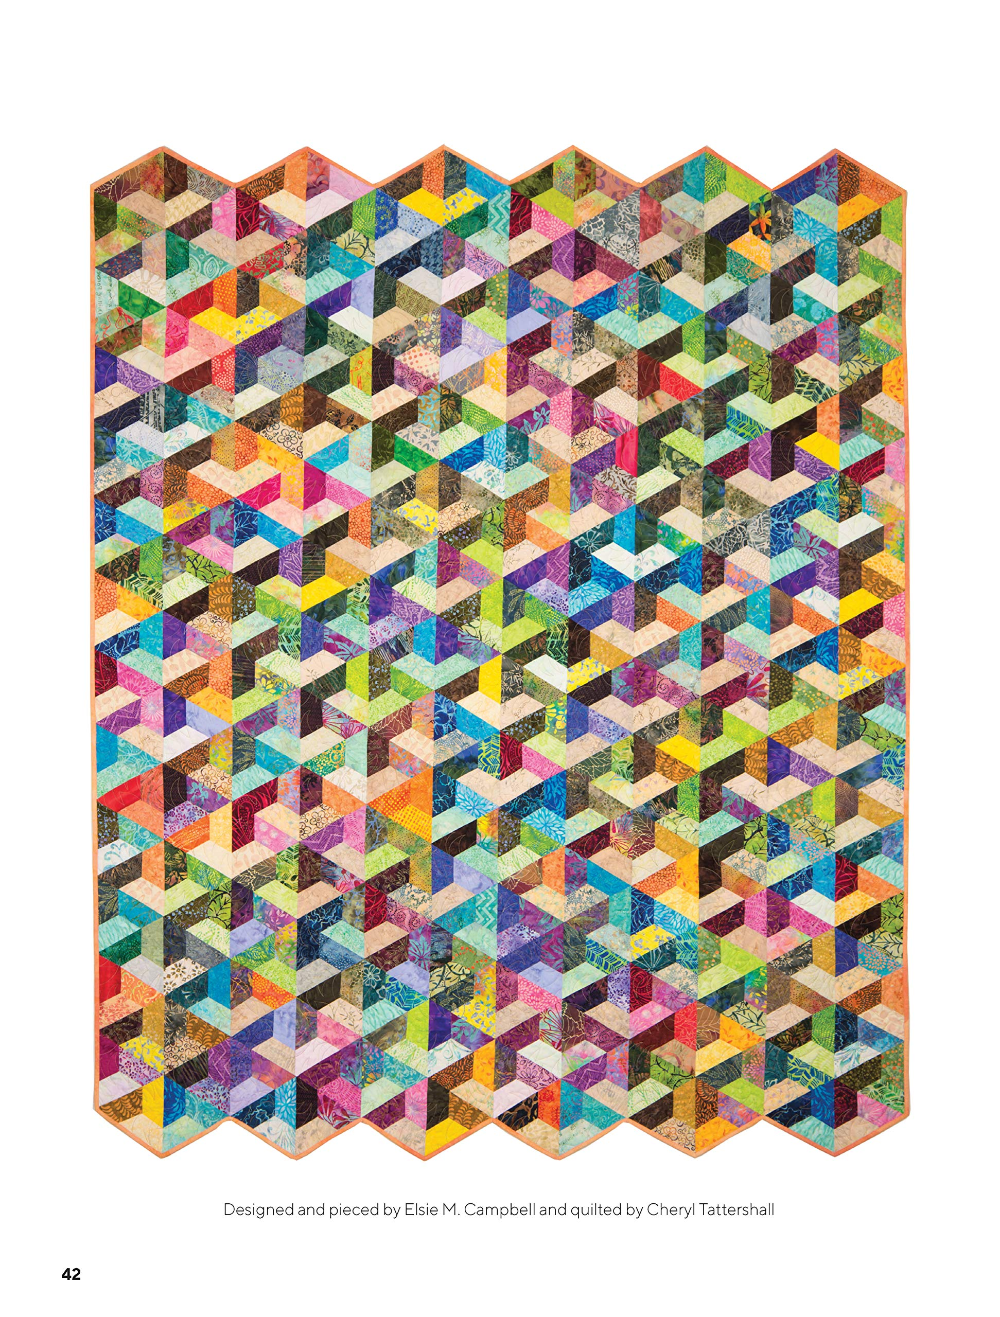 Radiant Quilts Stunning Quilts From Simple Shapes A Scrap Quilt Book Landauer Publishing 9 Step By Step Projects Ful In 2020 Book Quilt Quilt Piecing Scrap Quilts